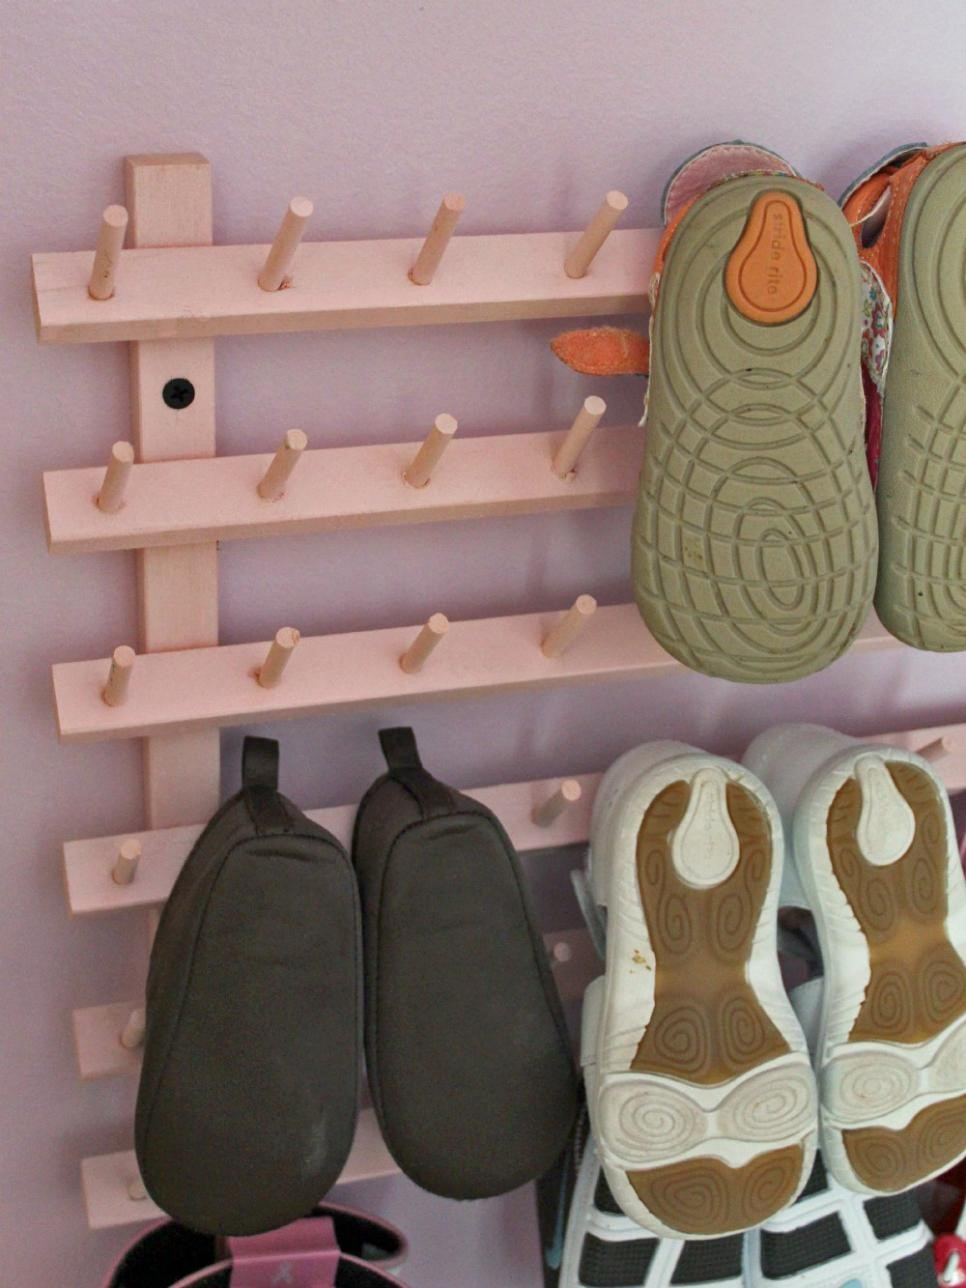 4 Upcycling Wooden Thread Rack Simphome com